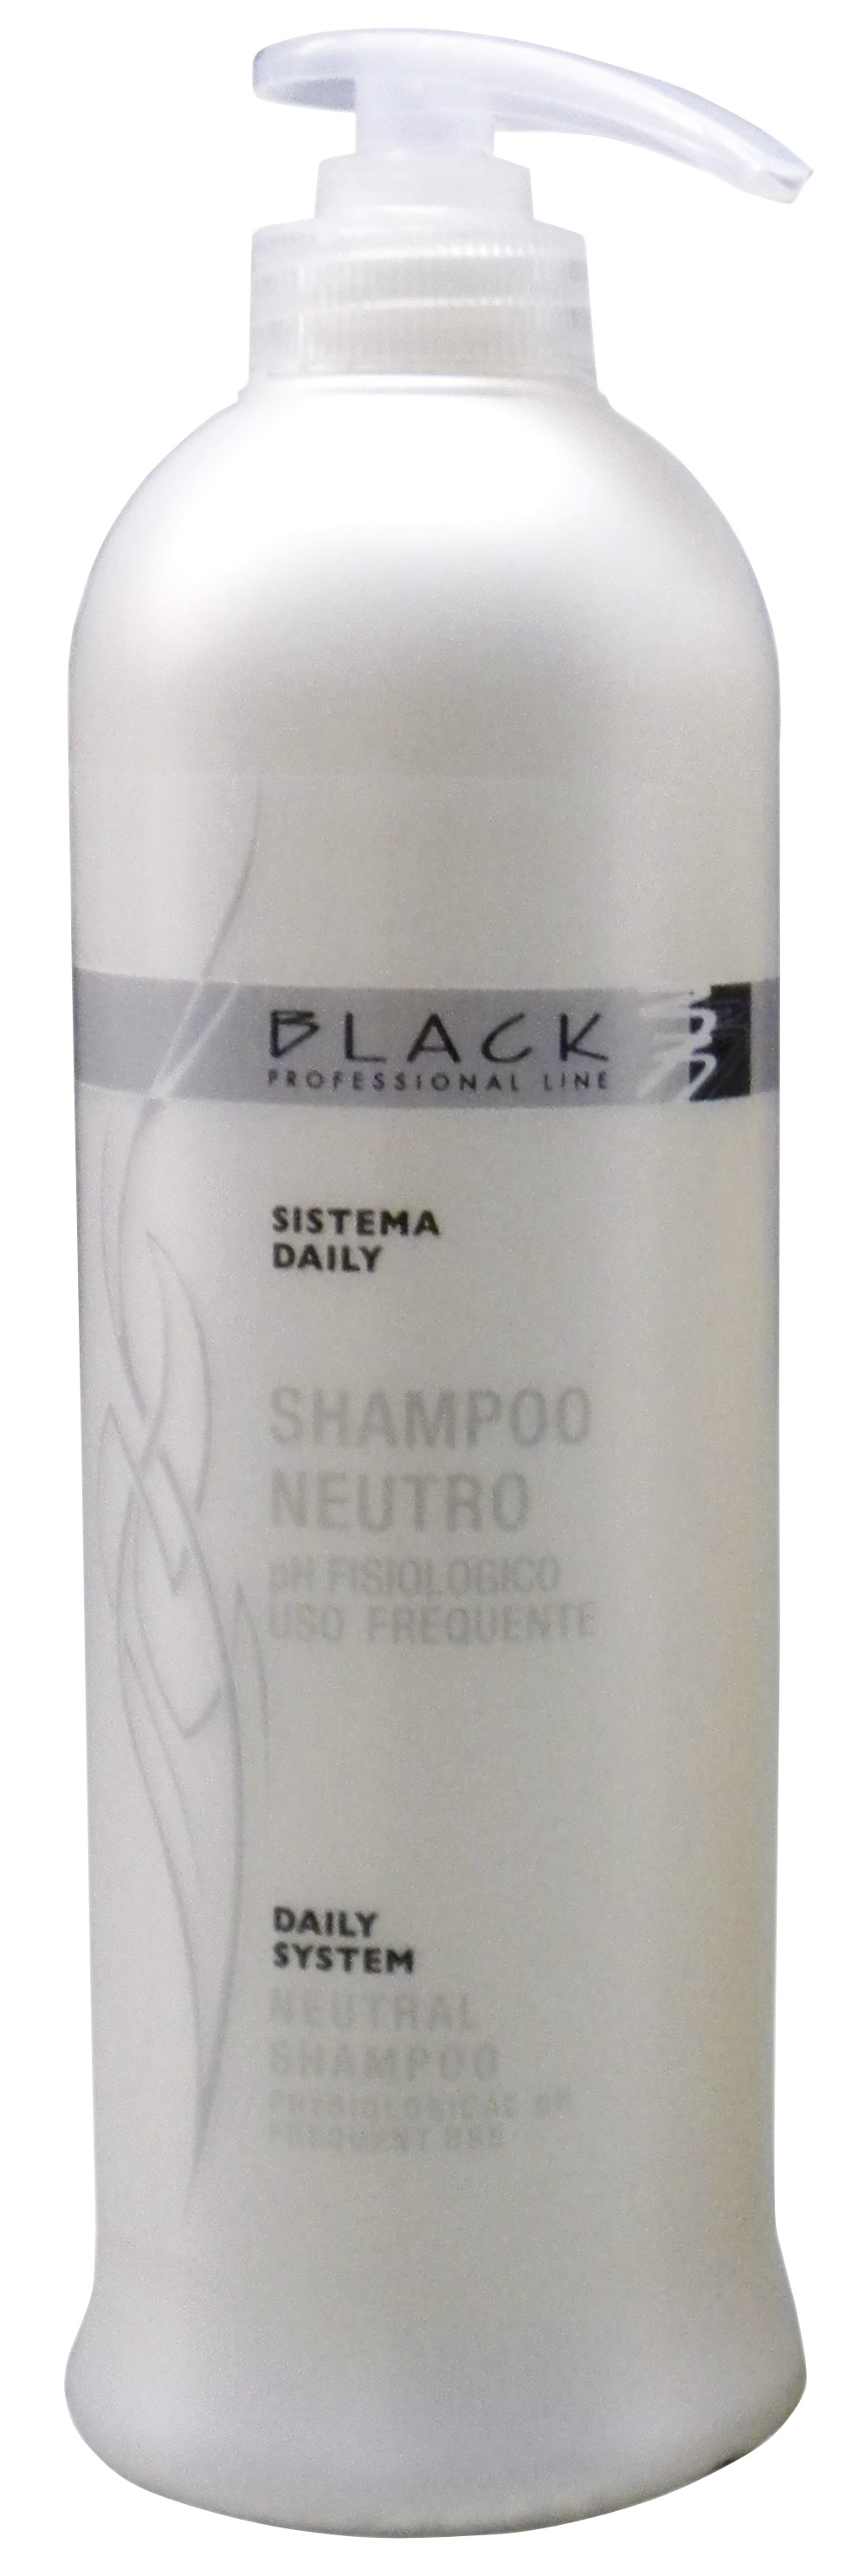 Black Shampoo Neutro 500 ml